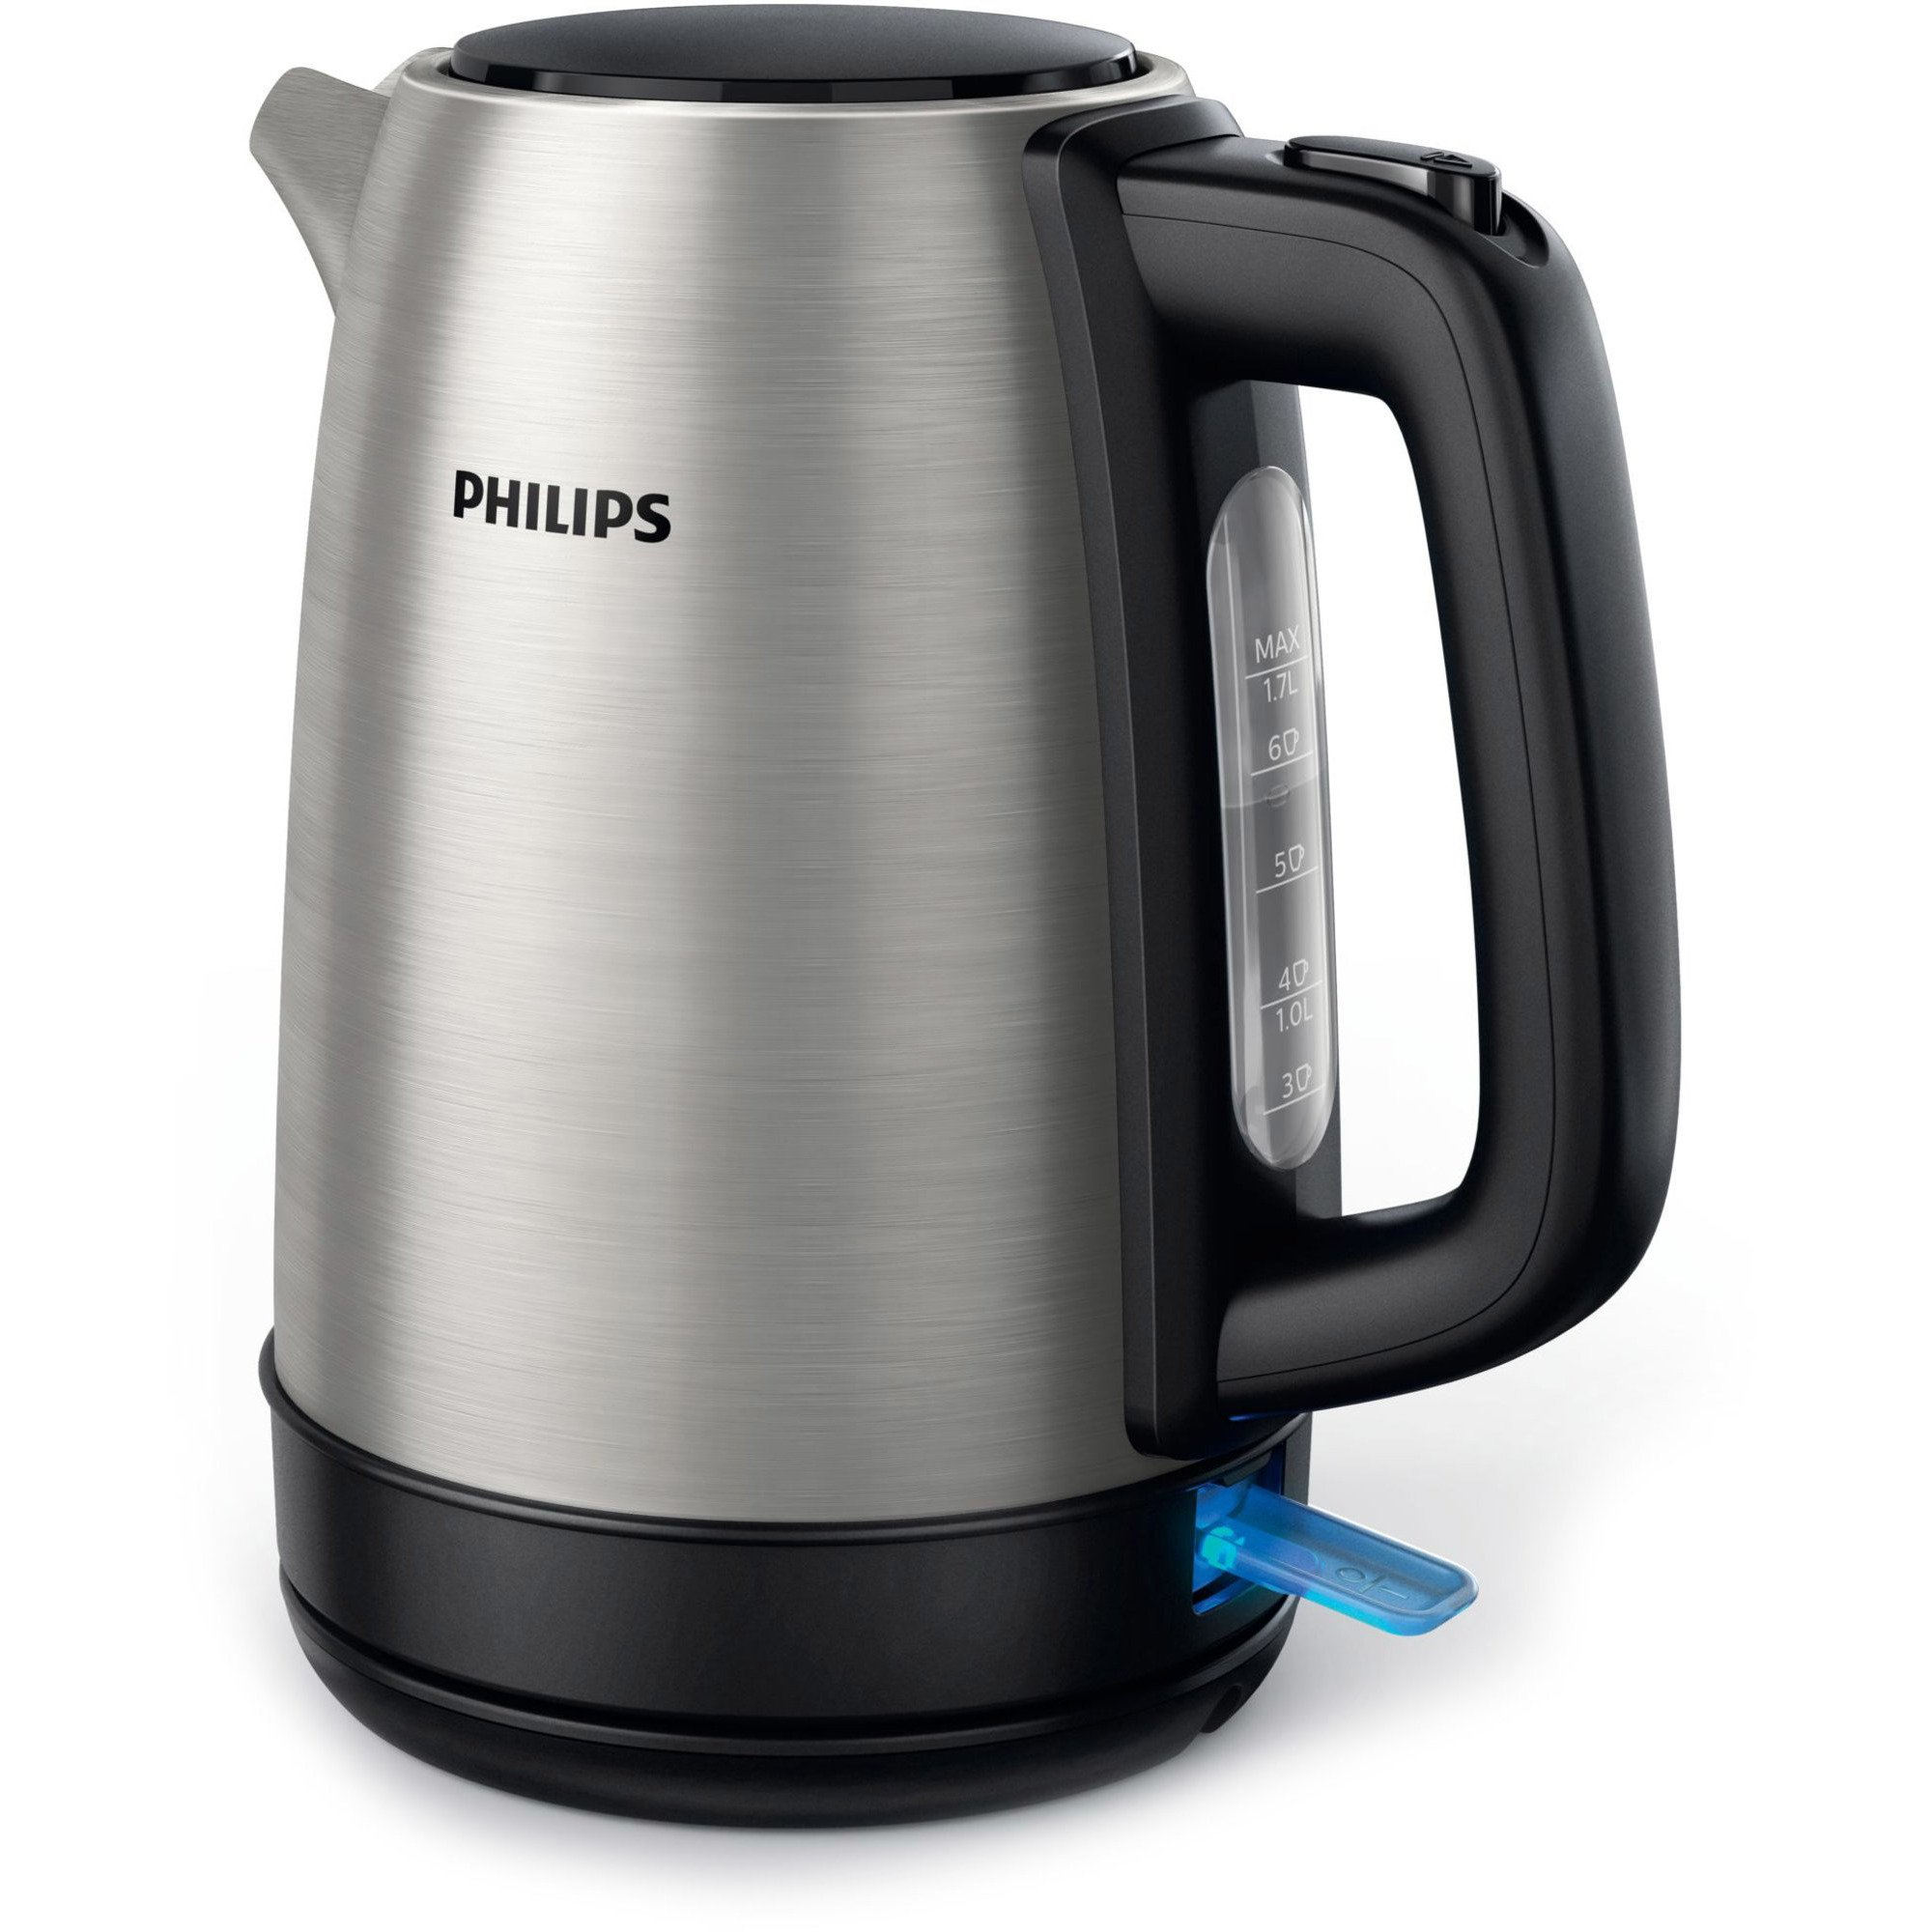 Philips HD9350/90 Vattenkokare 17 liter metall